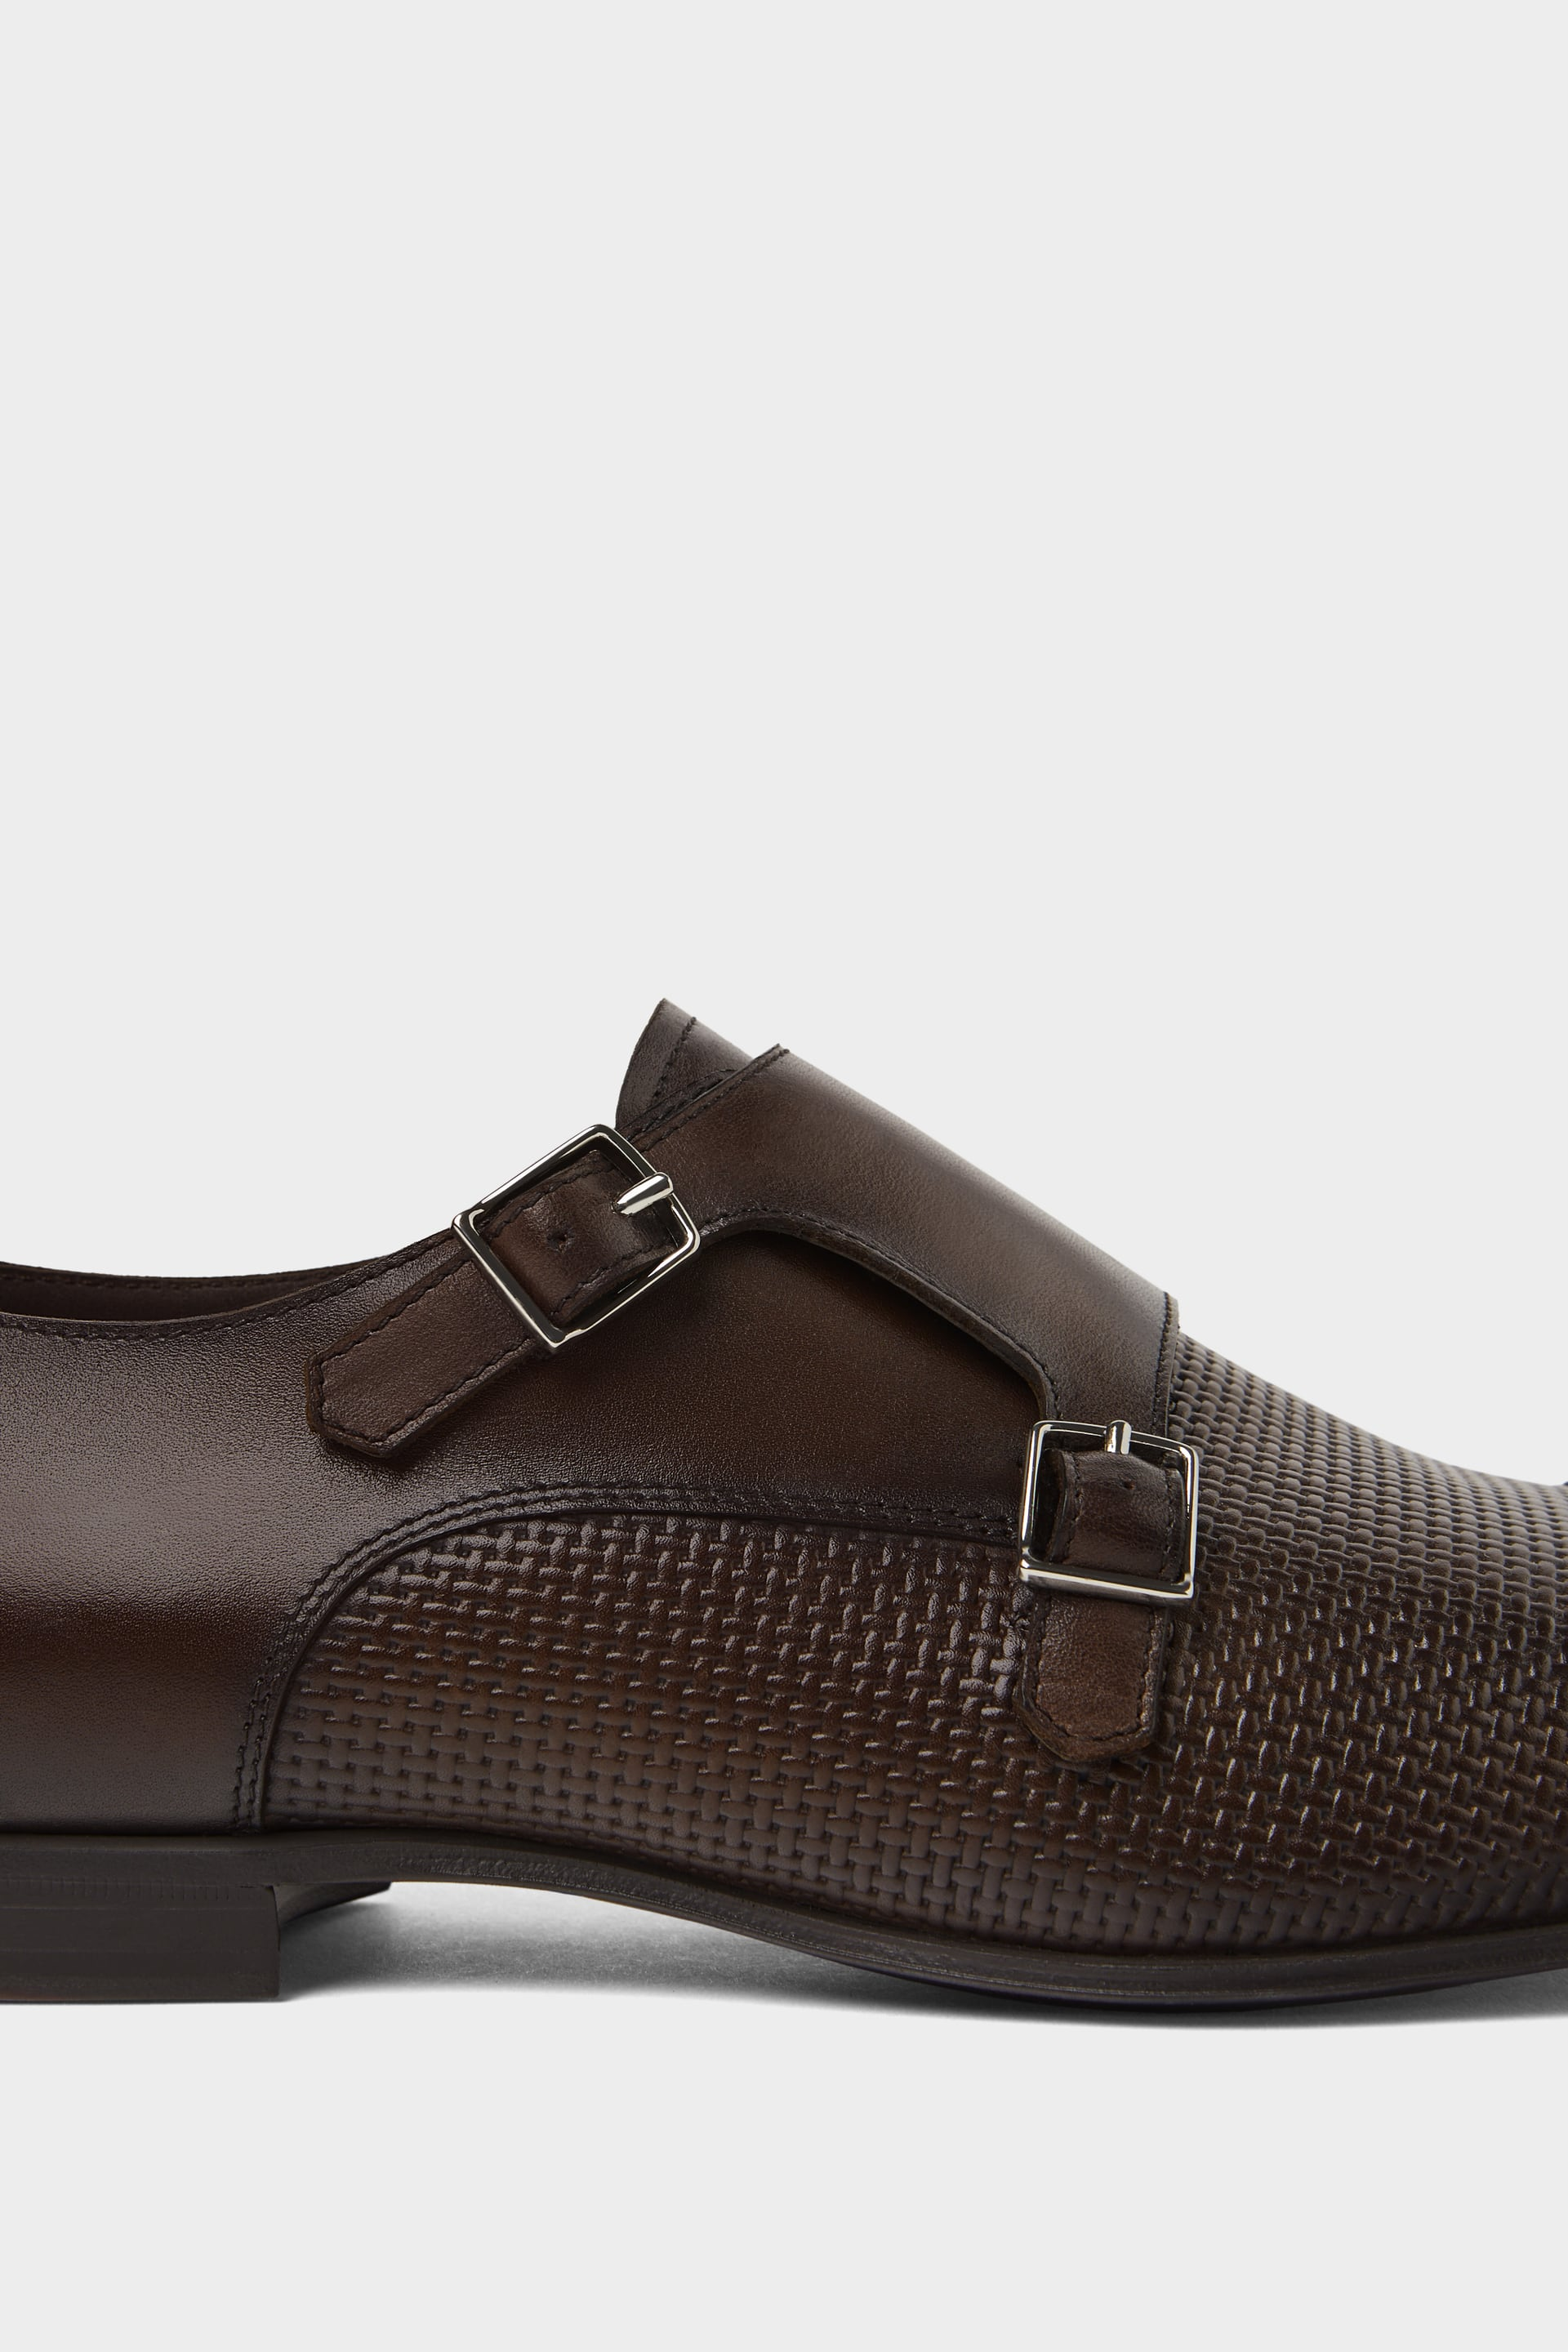 BROWN LEATHER SHOES WITH TWO BUCKLES